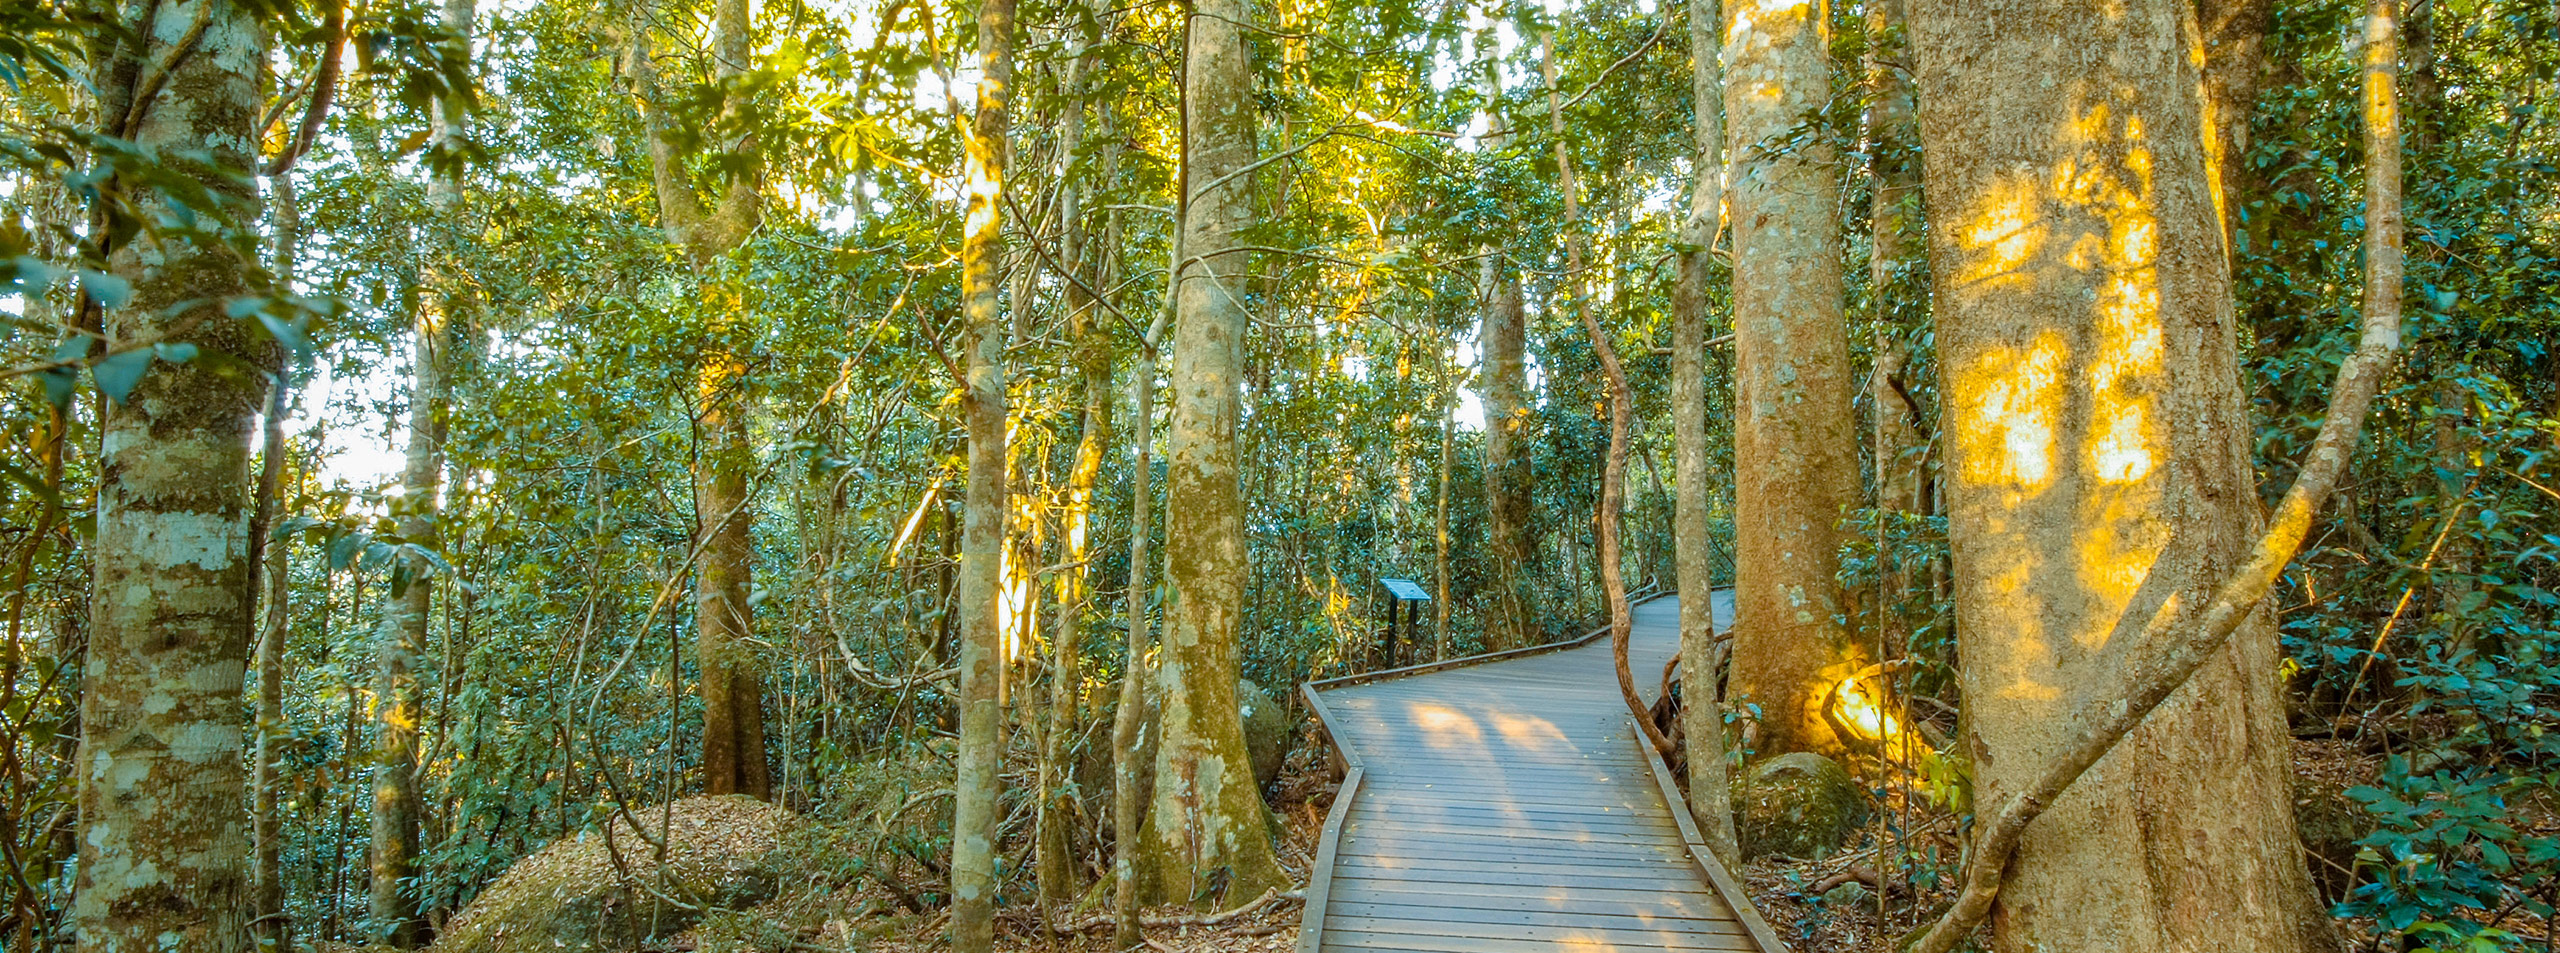 Boardwalk, Lamington National Park